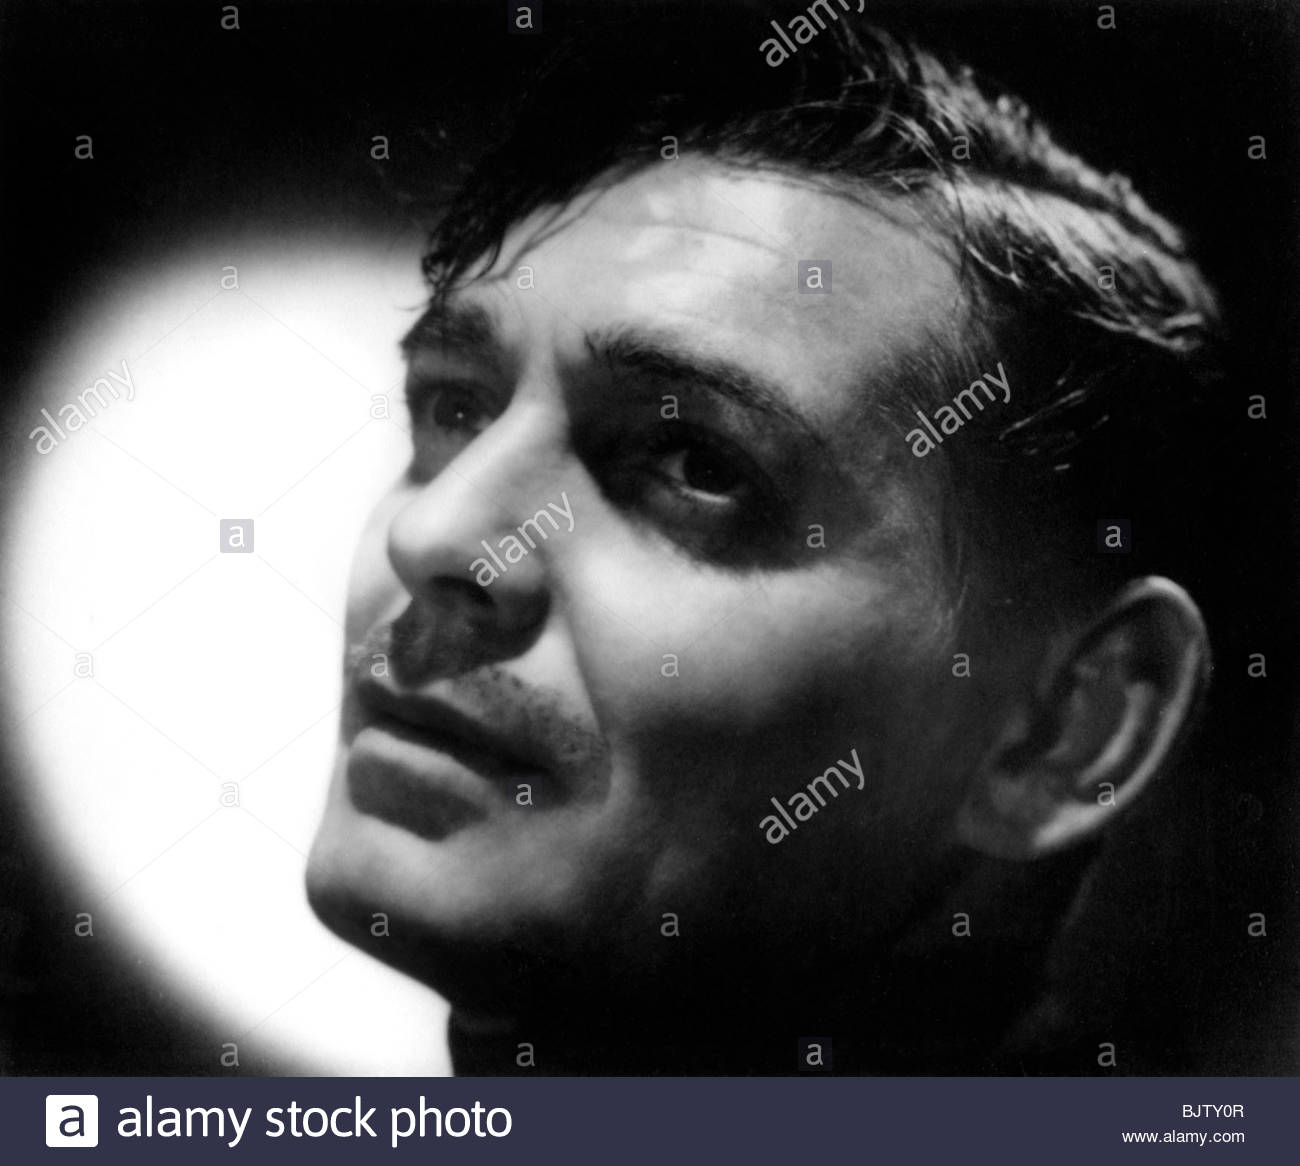 Clarke Gable, American actor and film star, 1938. - Stock Image